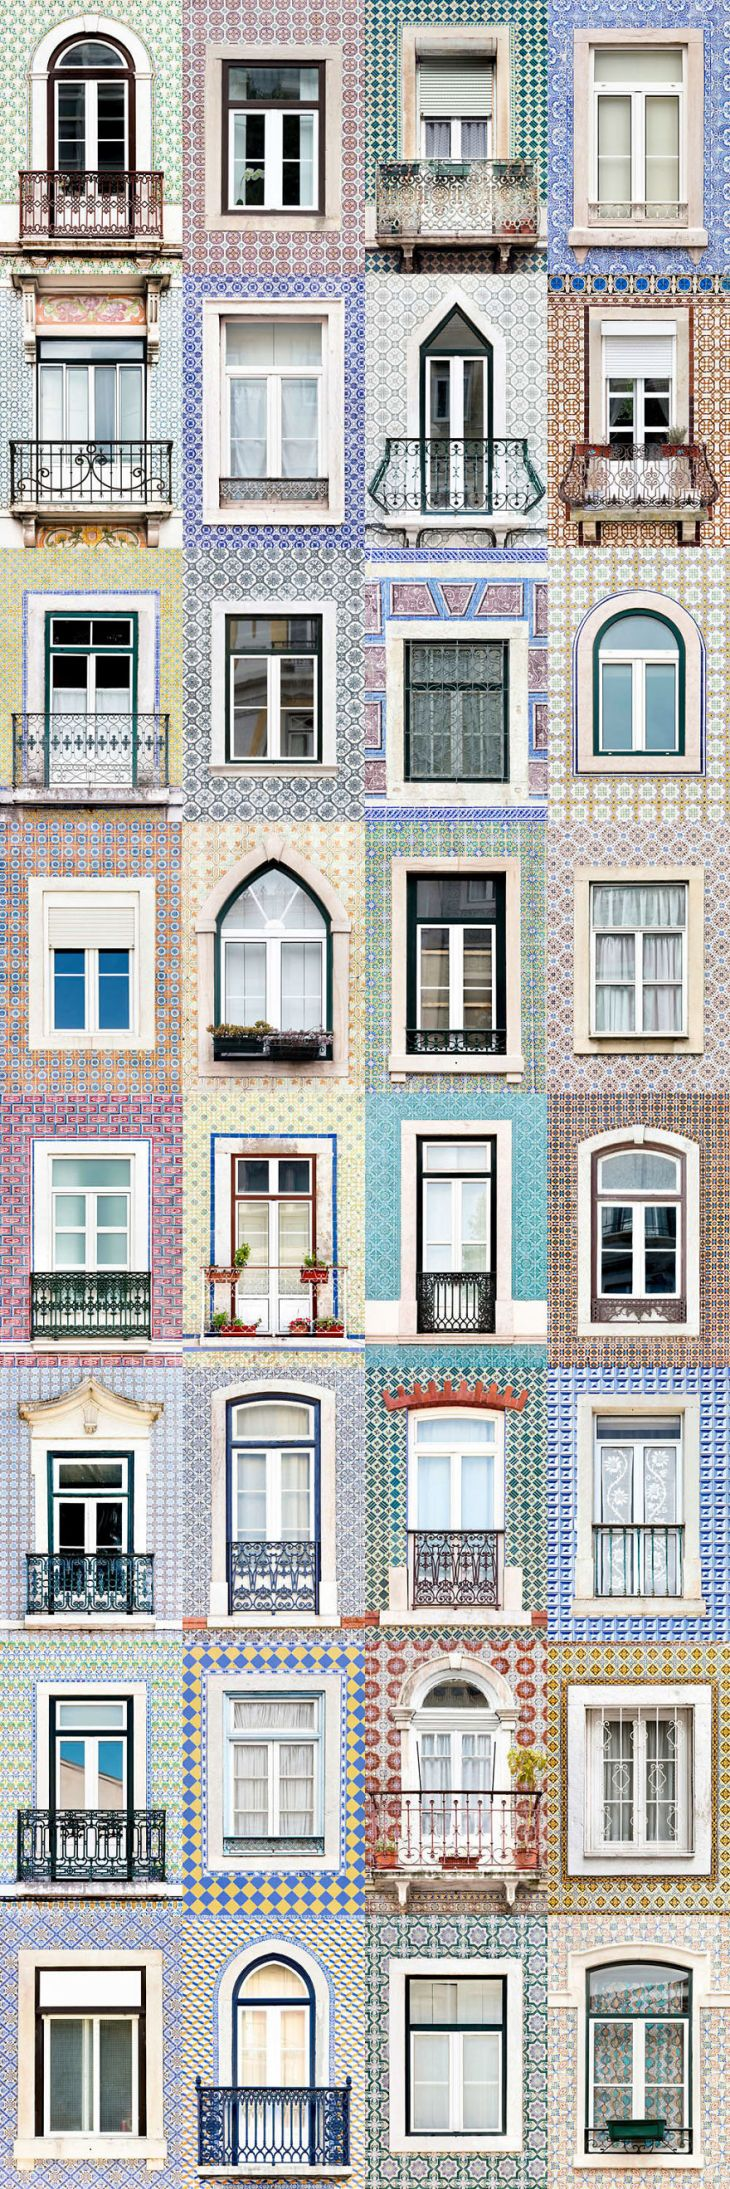 I-traveled-all-over-portugal-to-photograph-windows-more-than-3200-59edaf36622ed__880